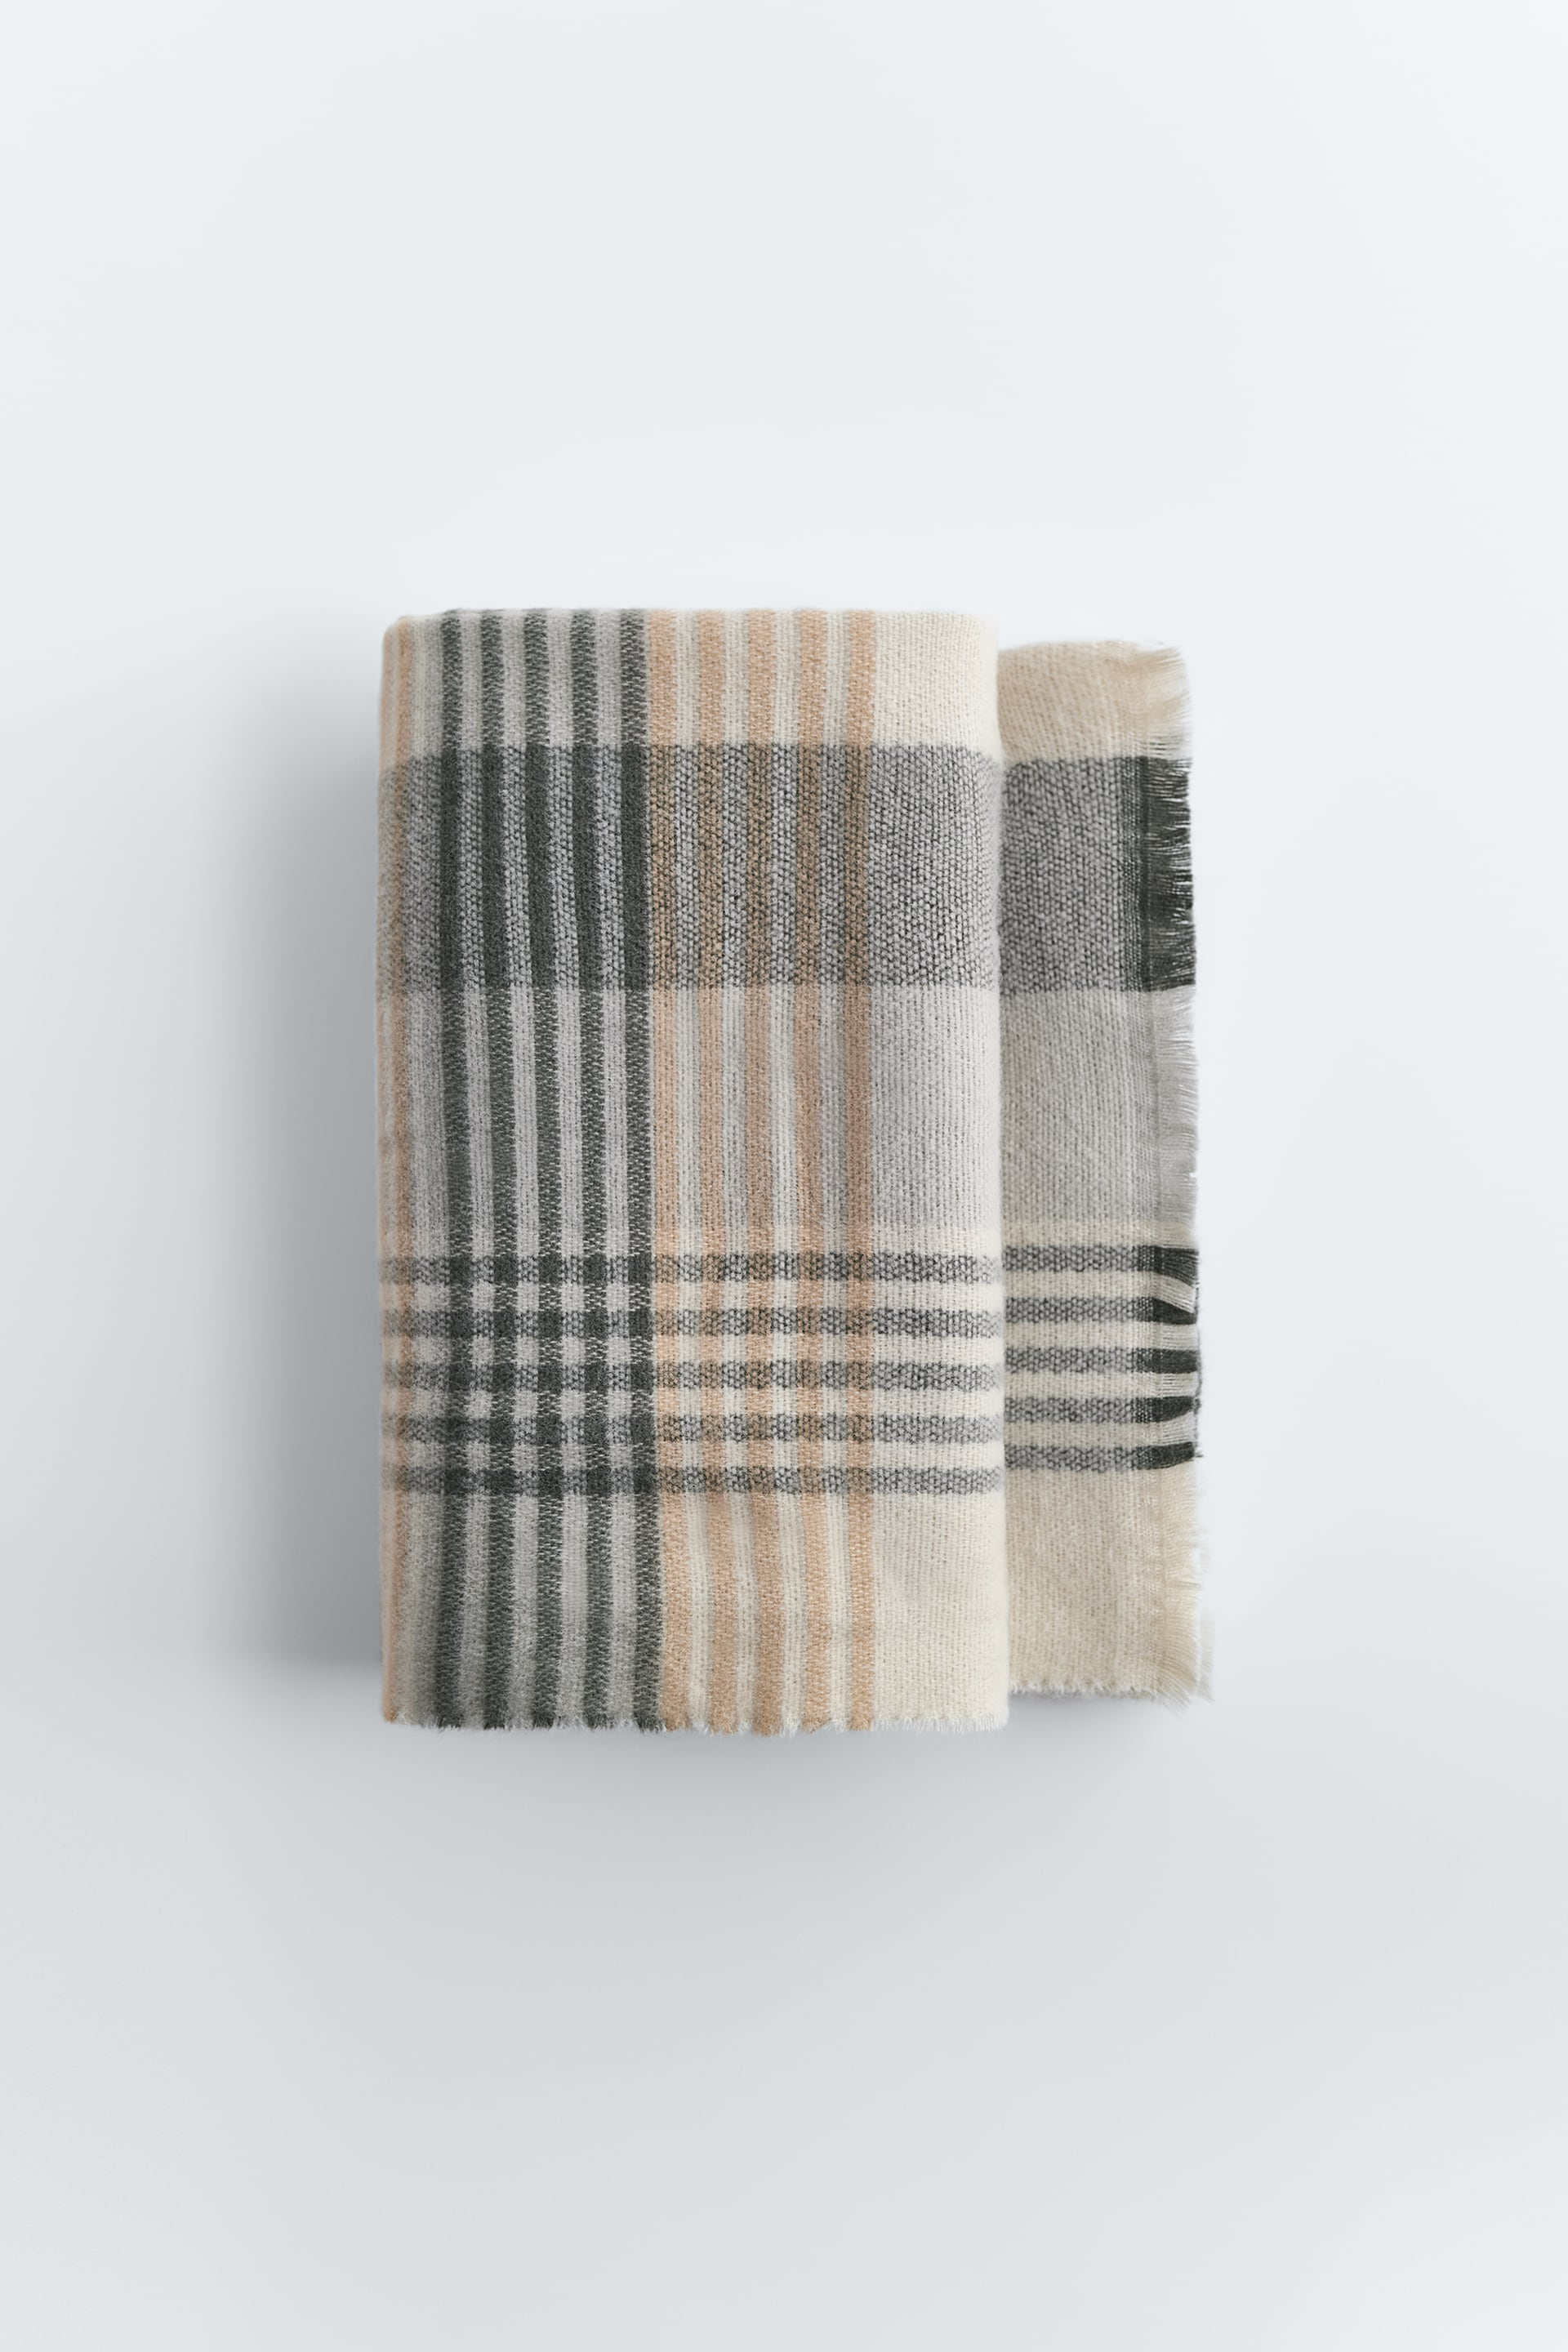 Ladies ZARA LARGE Brown CHECKED SCARF Plaid SOFT TOUCH Wrap Womans